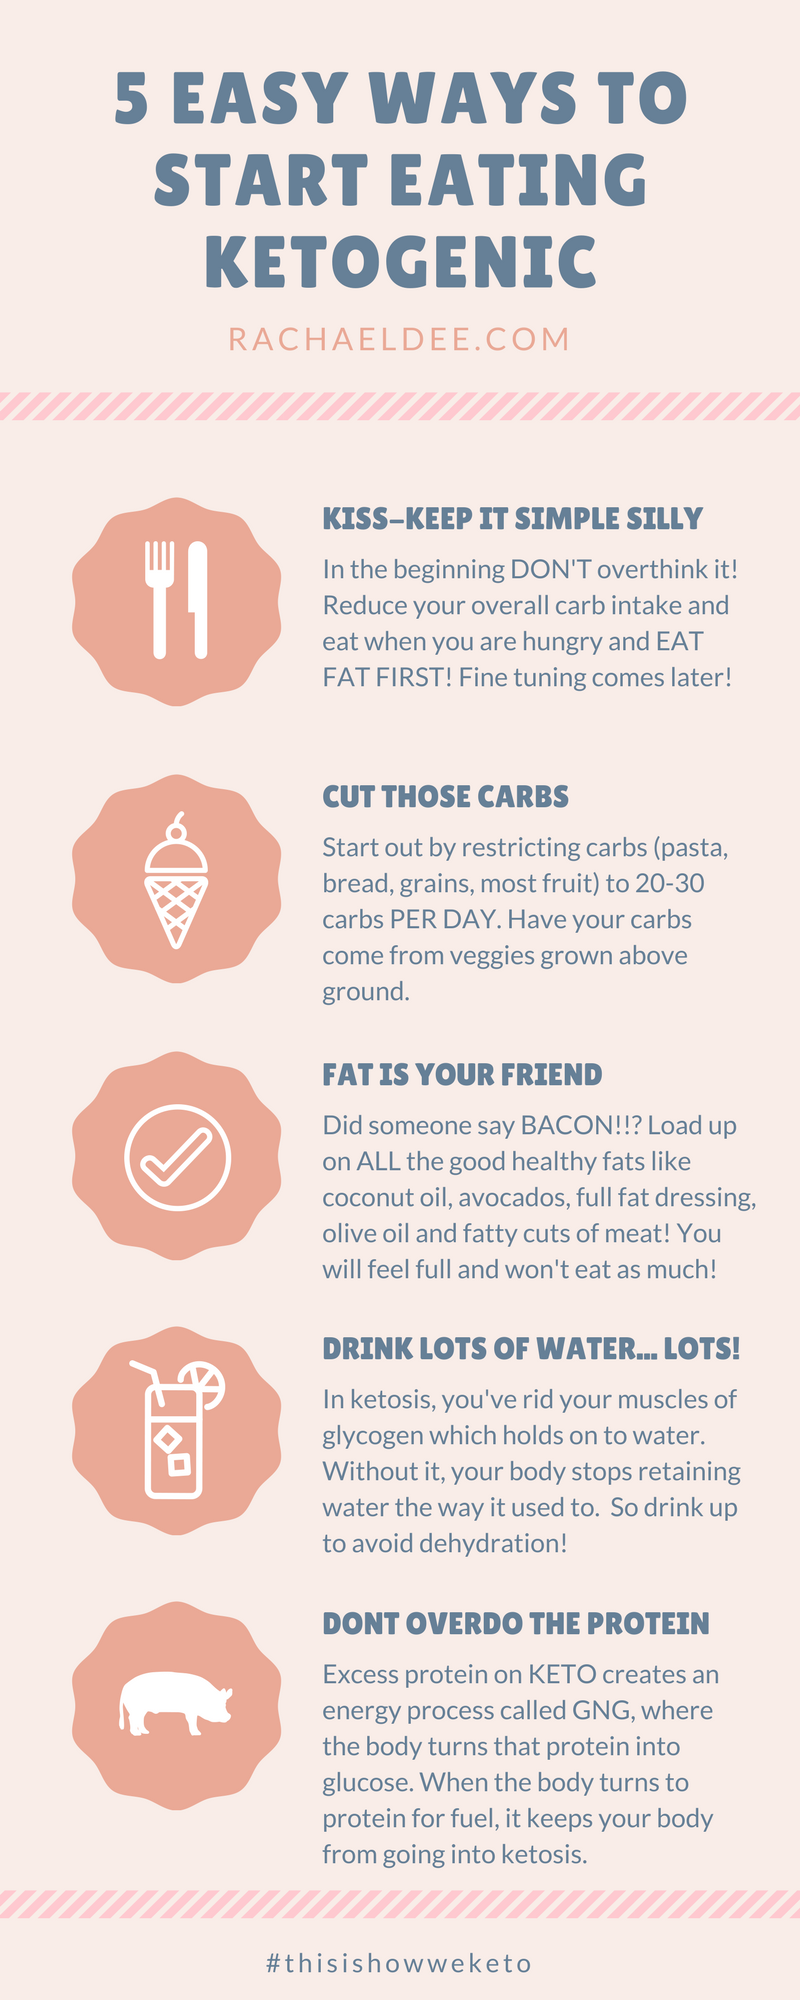 Easy ways to start eating Ketogenic